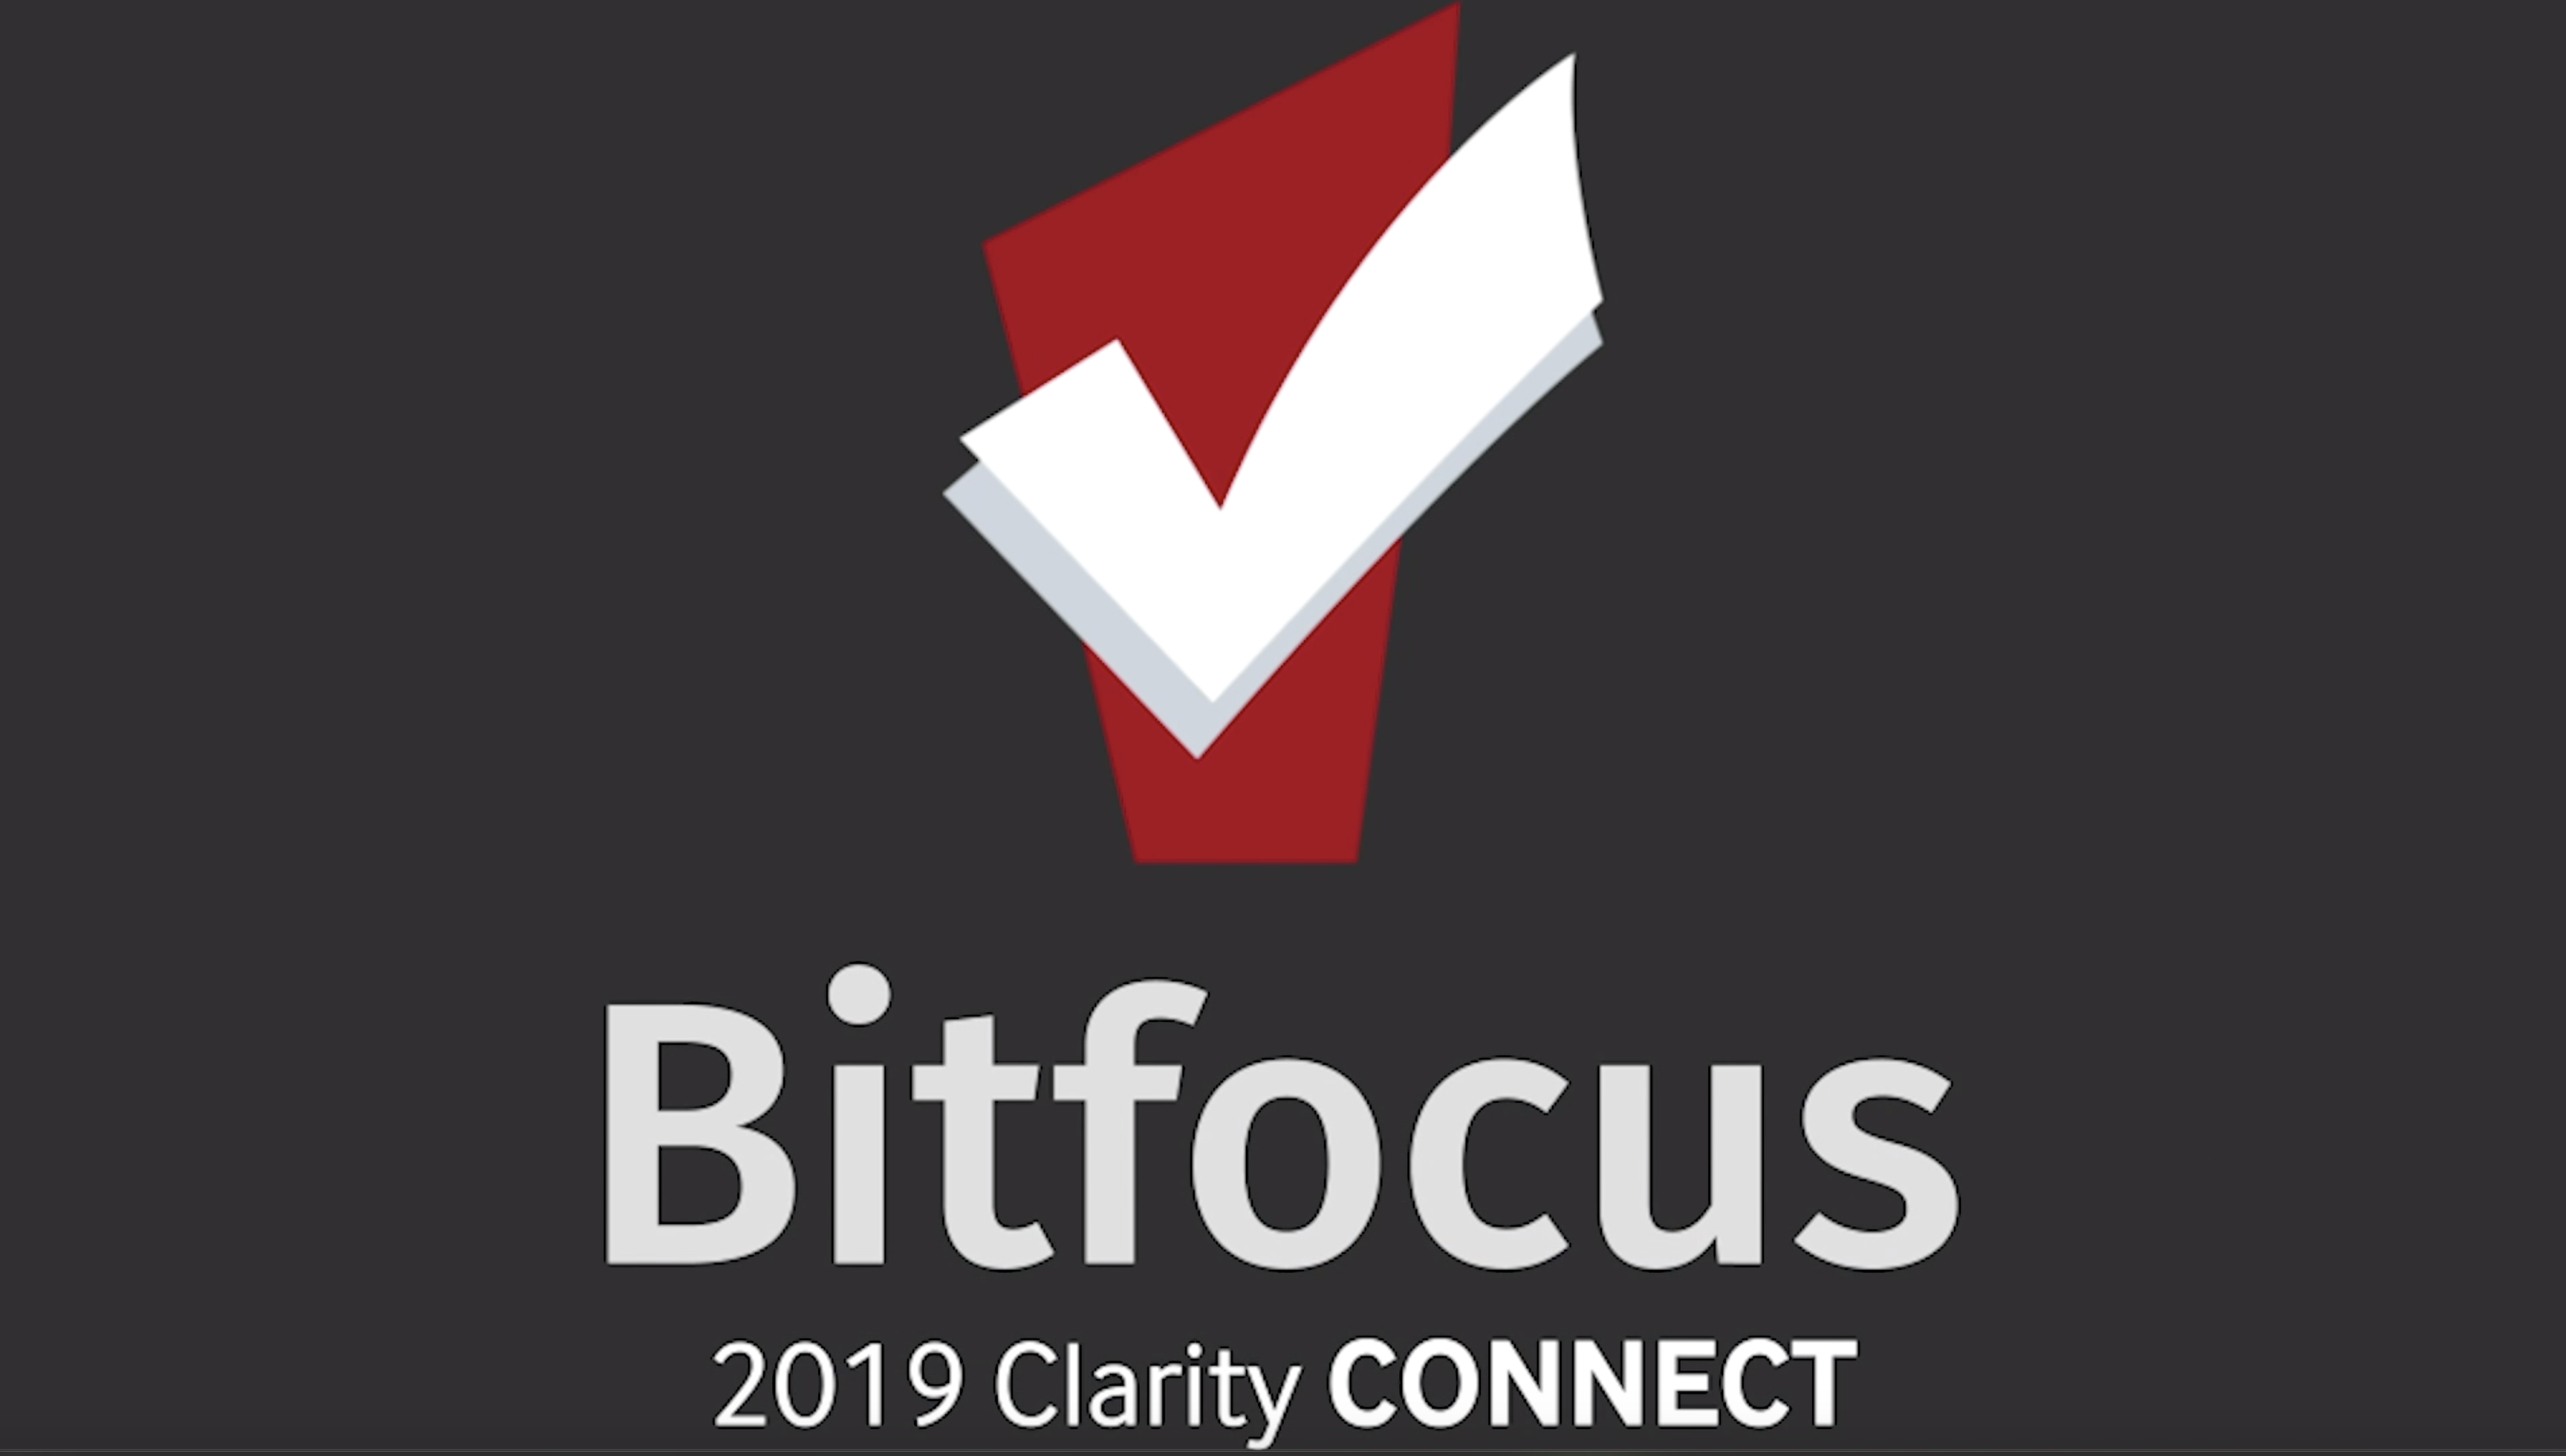 Clarity Connect 2019: Data Analysis - Clarity Human Services Data Import Tool